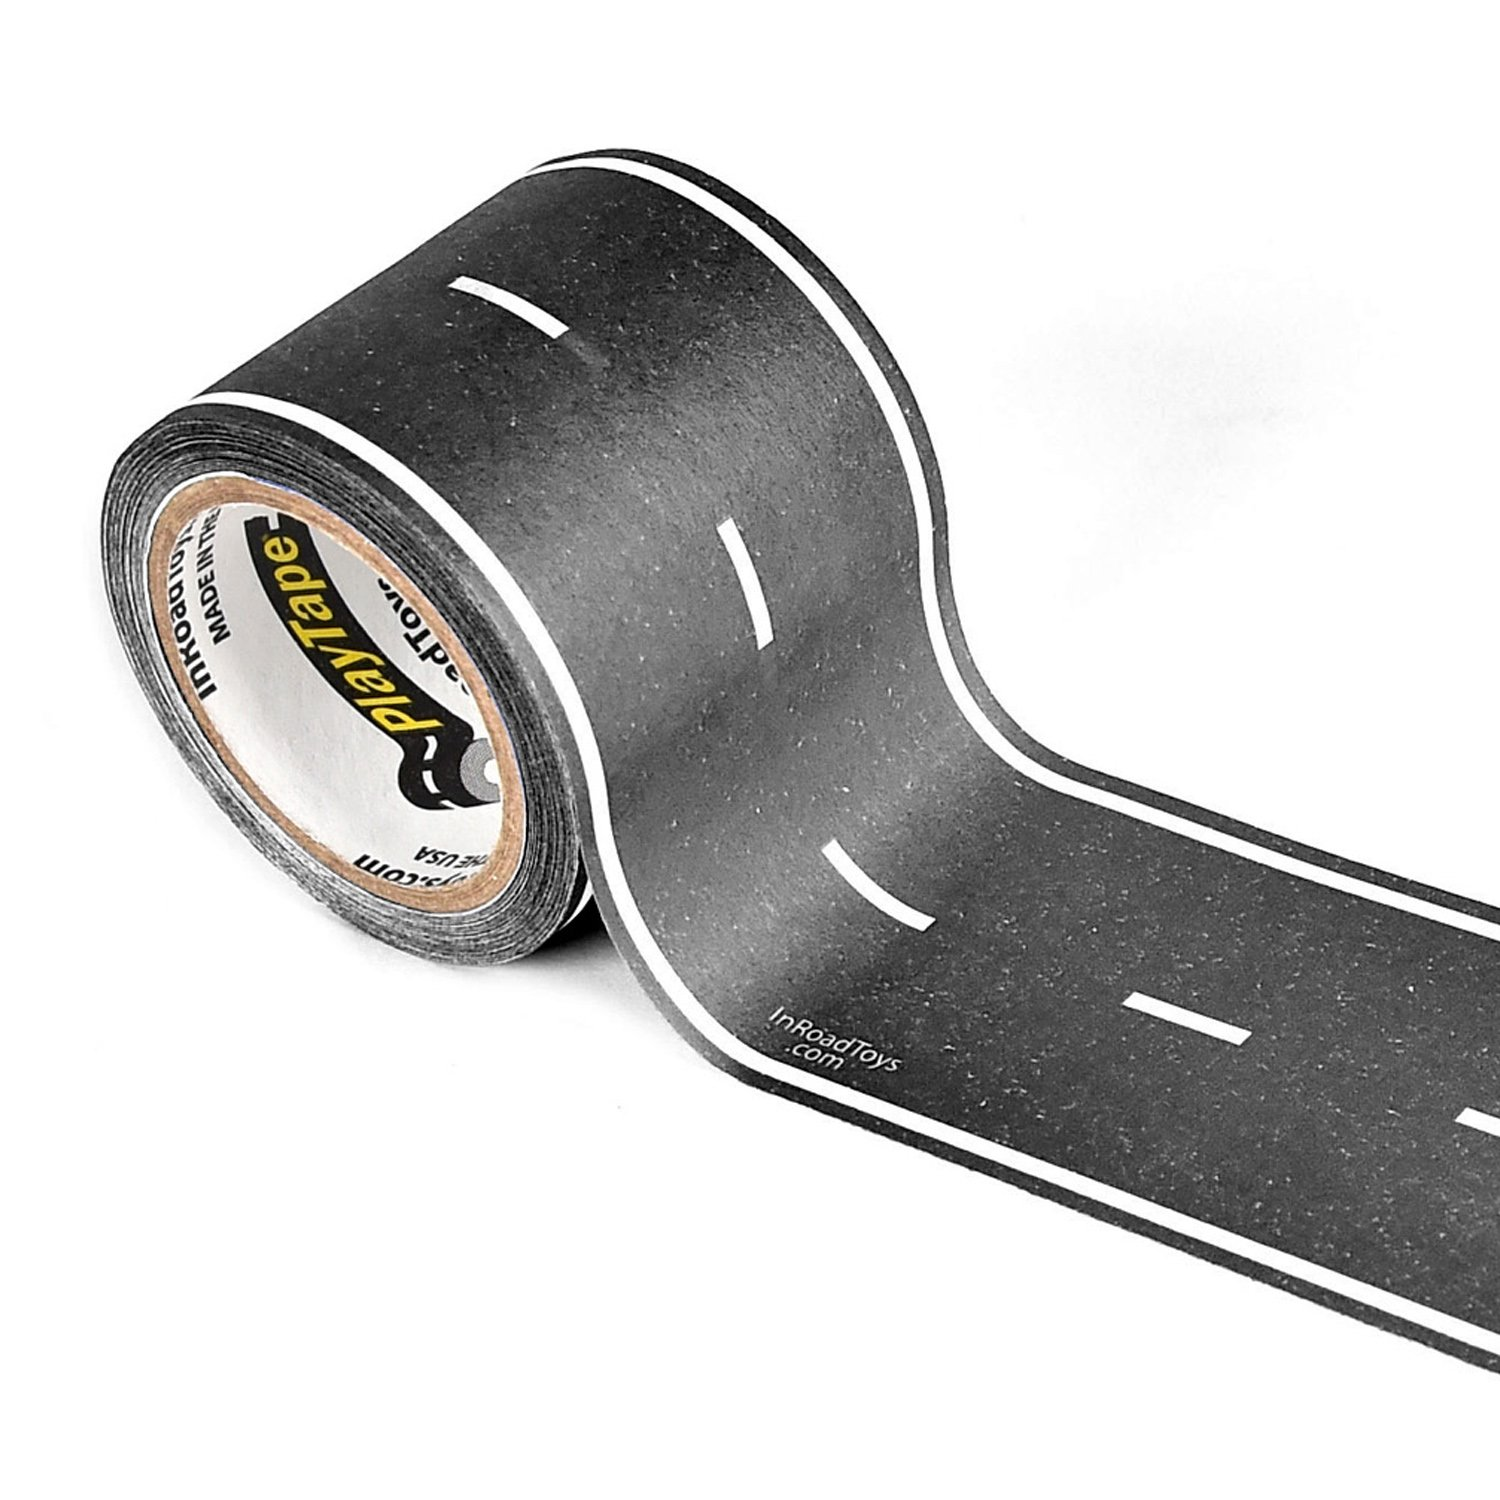 amazoncom playtape black single roll 30x2 road car tape great for kids sticker roll for cars and train sets stick to floors and walls